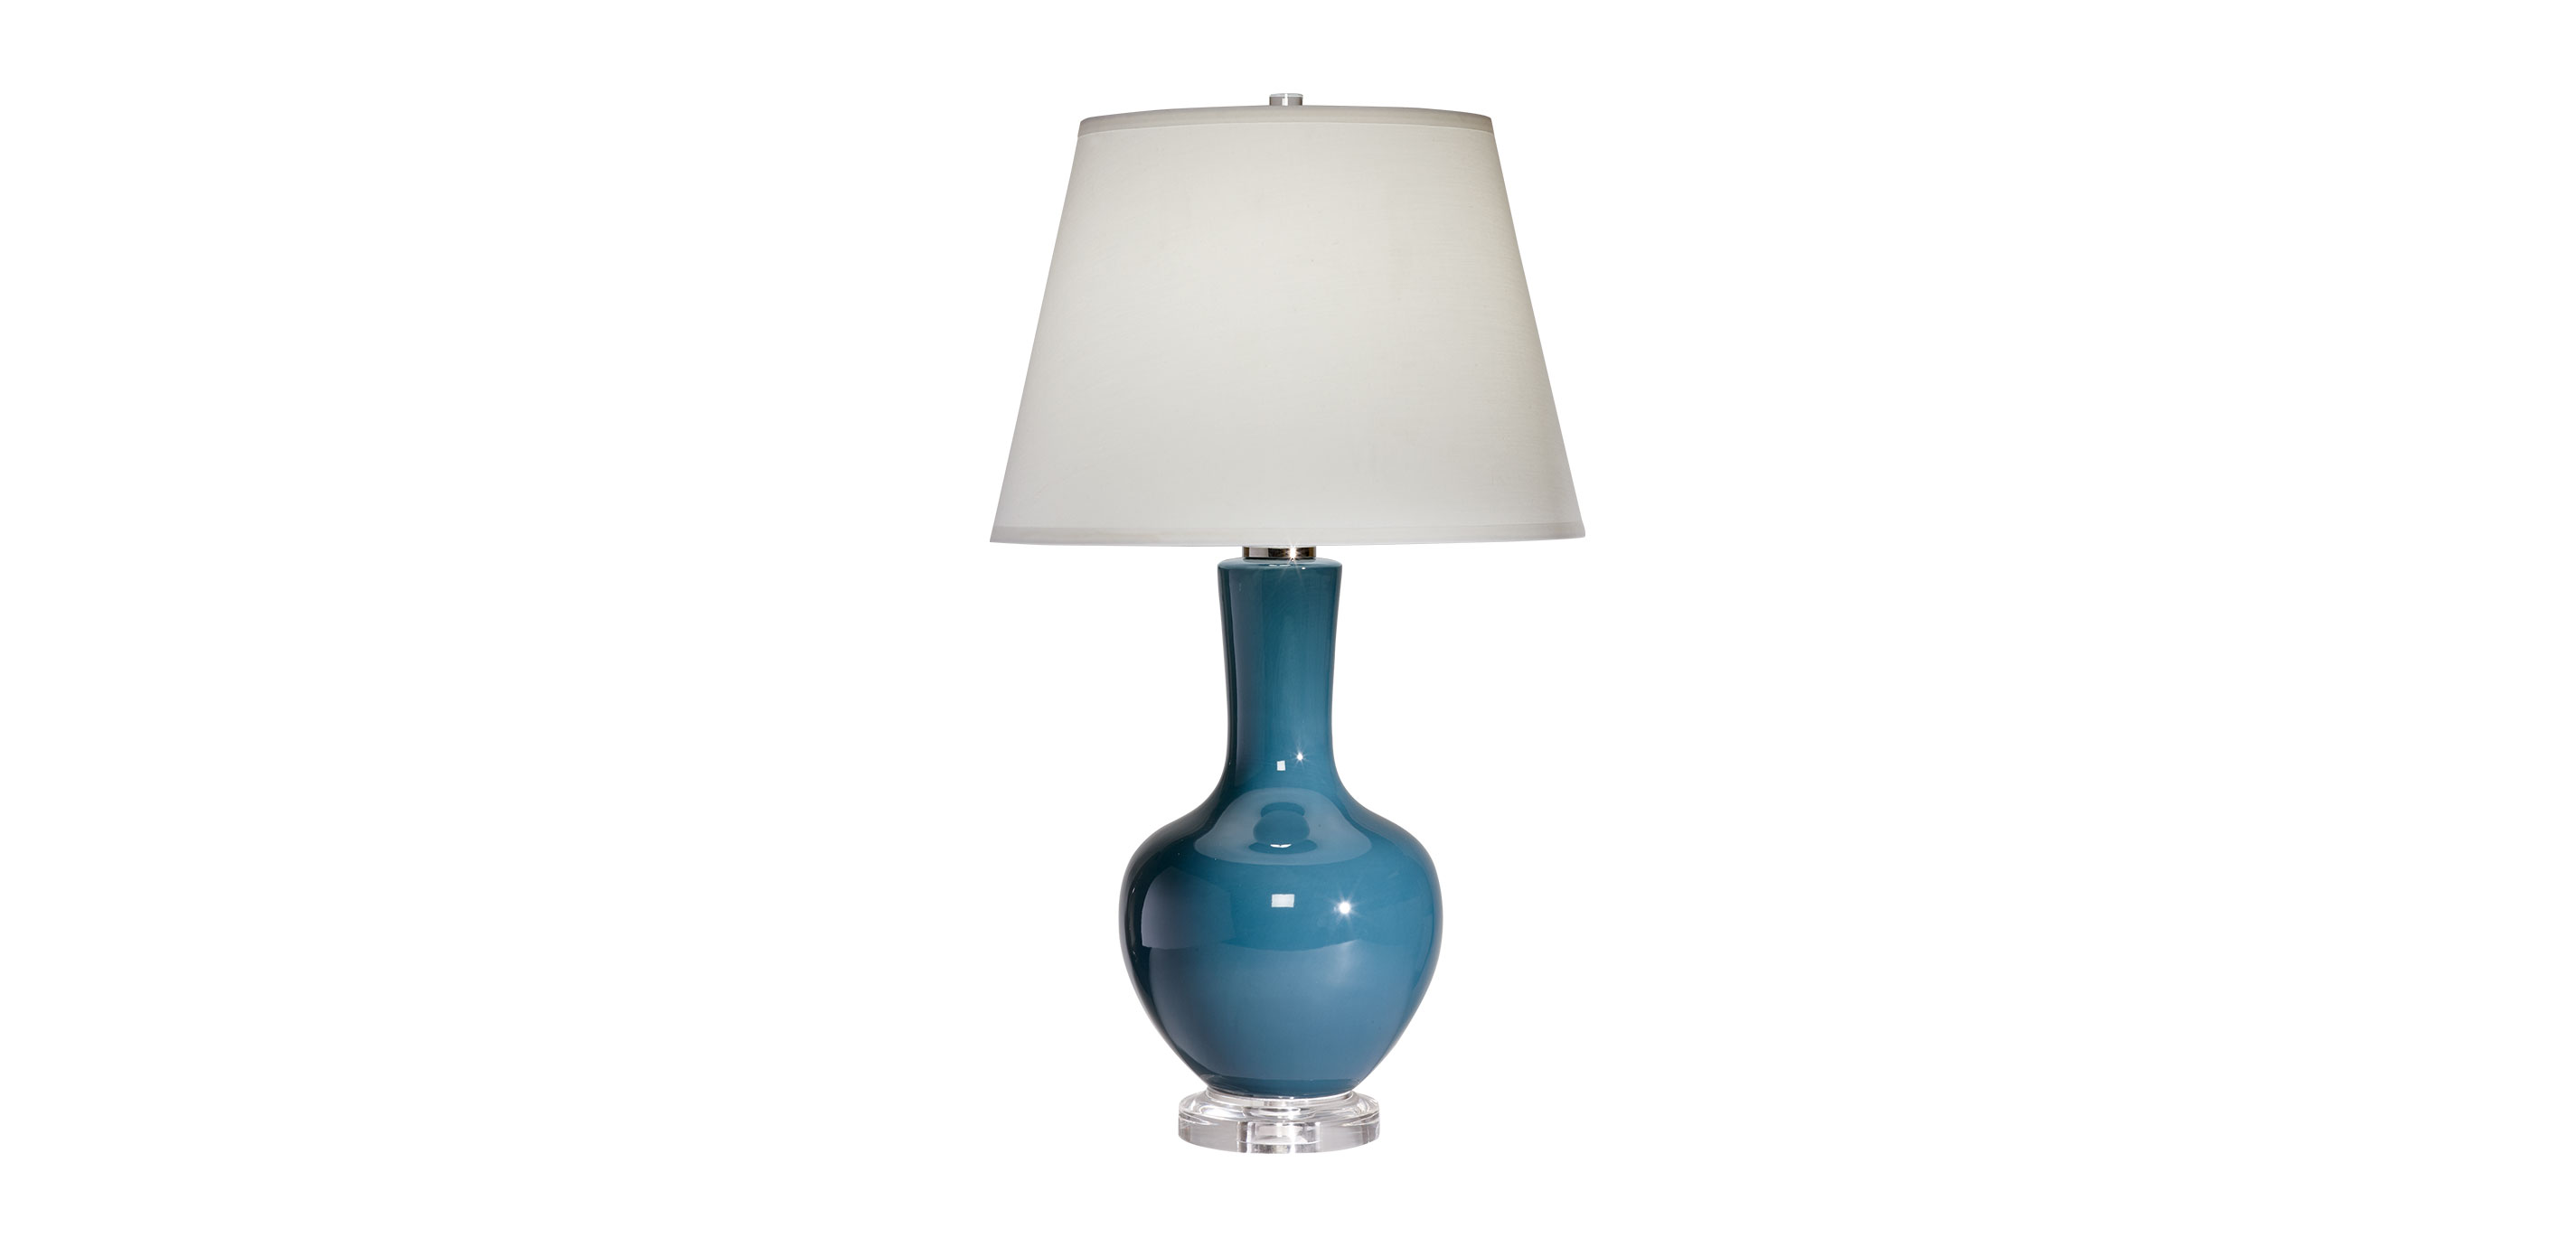 Lamp Verlichting Lia Table Lamp Table Lamps Ethan Allen